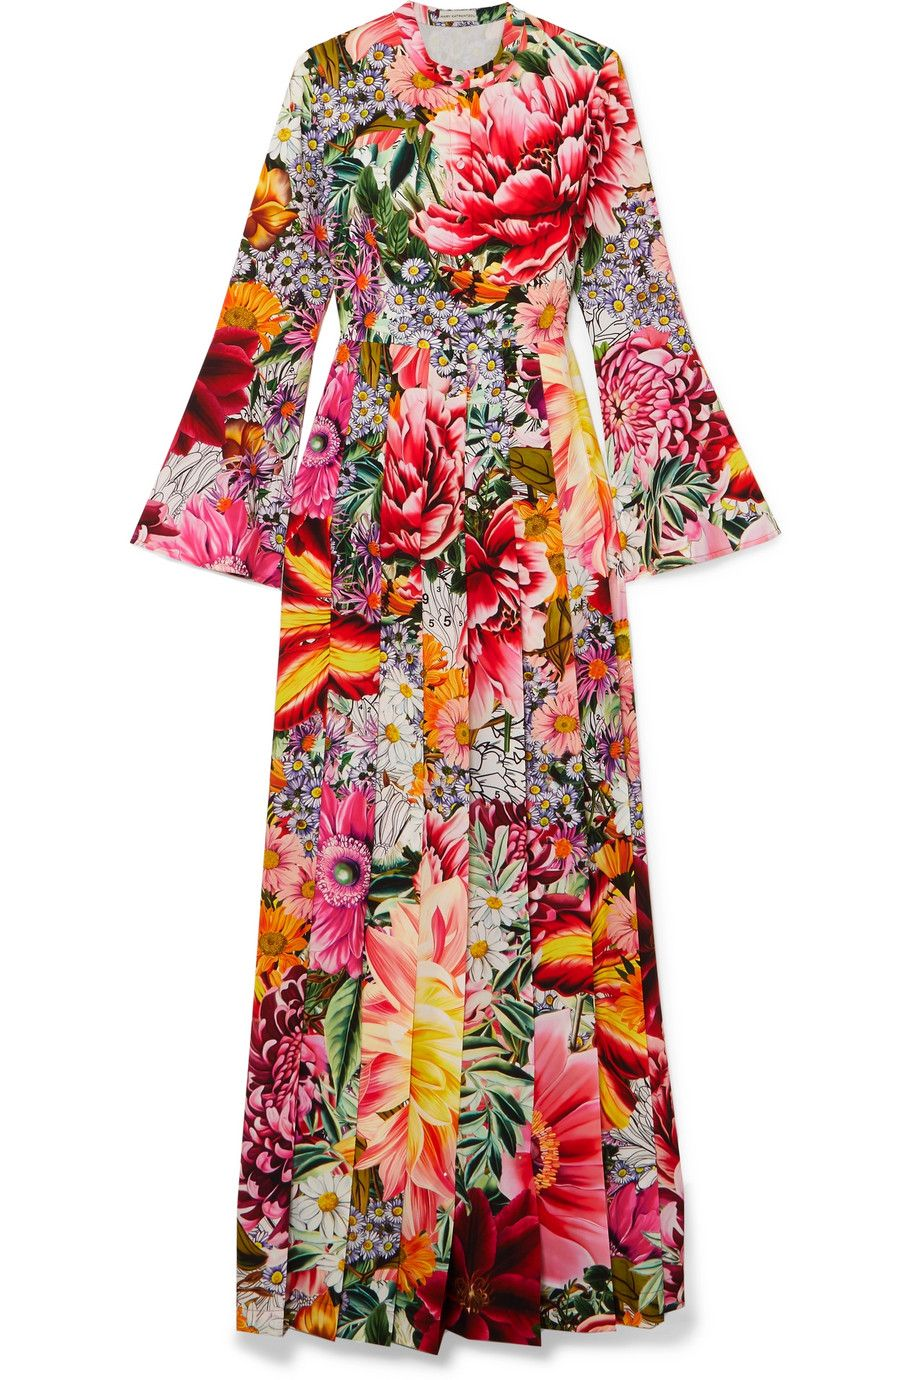 Desmine floral-printed crepe dress Mary Katrantzou Discount Pay With Visa Classic Sale Buy Fake Online LZ7XL